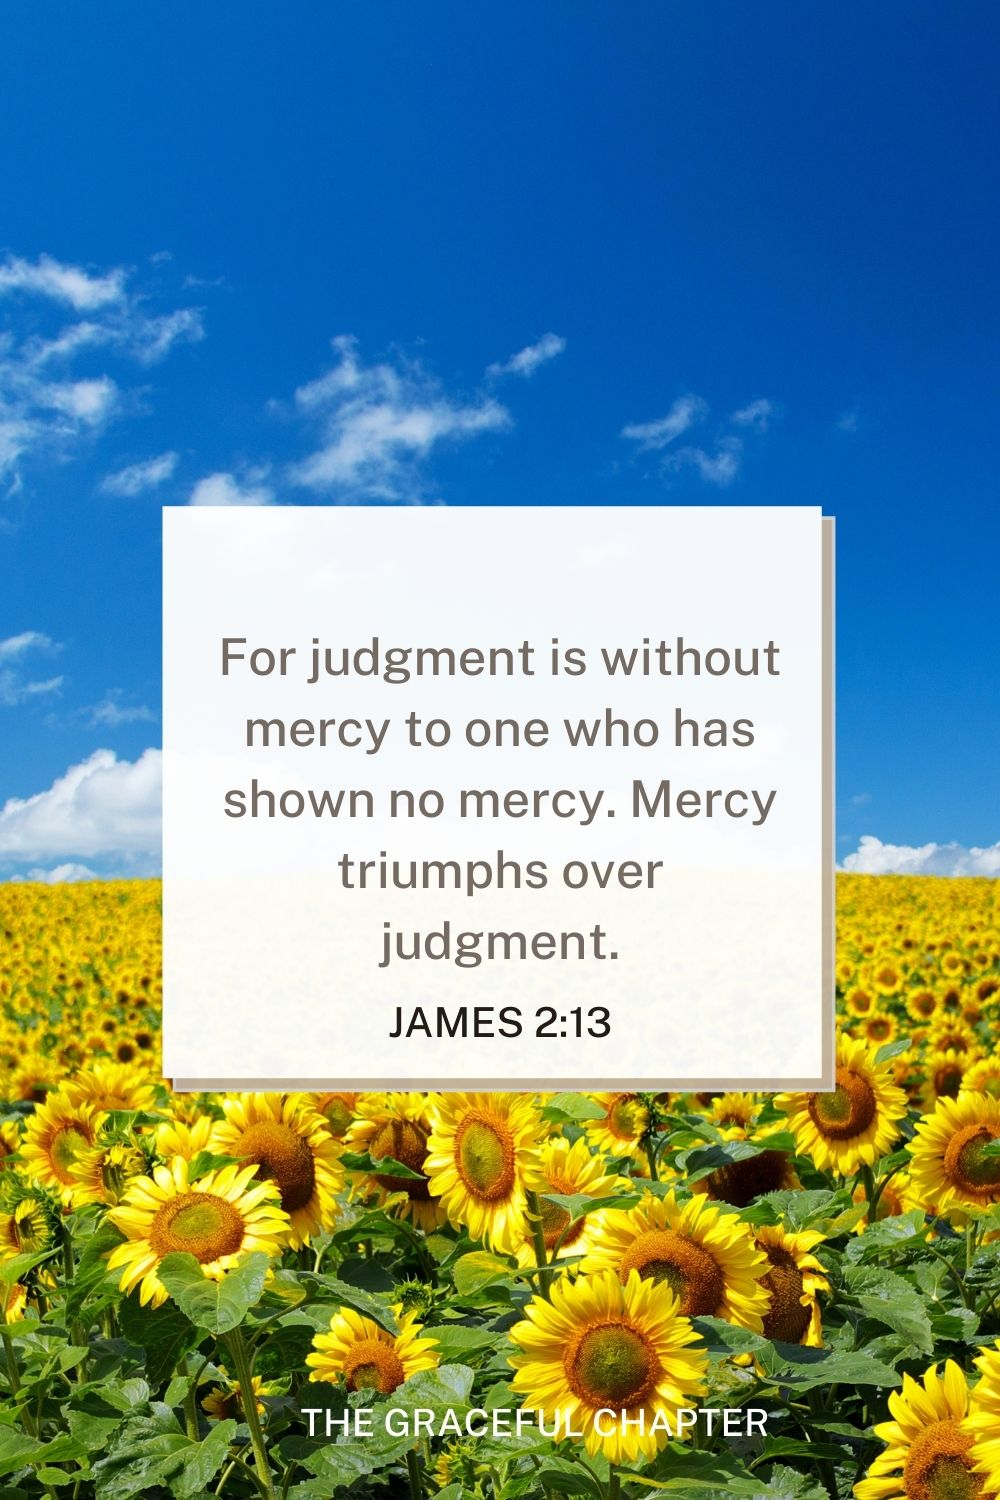 For judgment is without mercy to one who has shown no mercy. Mercy triumphs over judgment. James 2:13